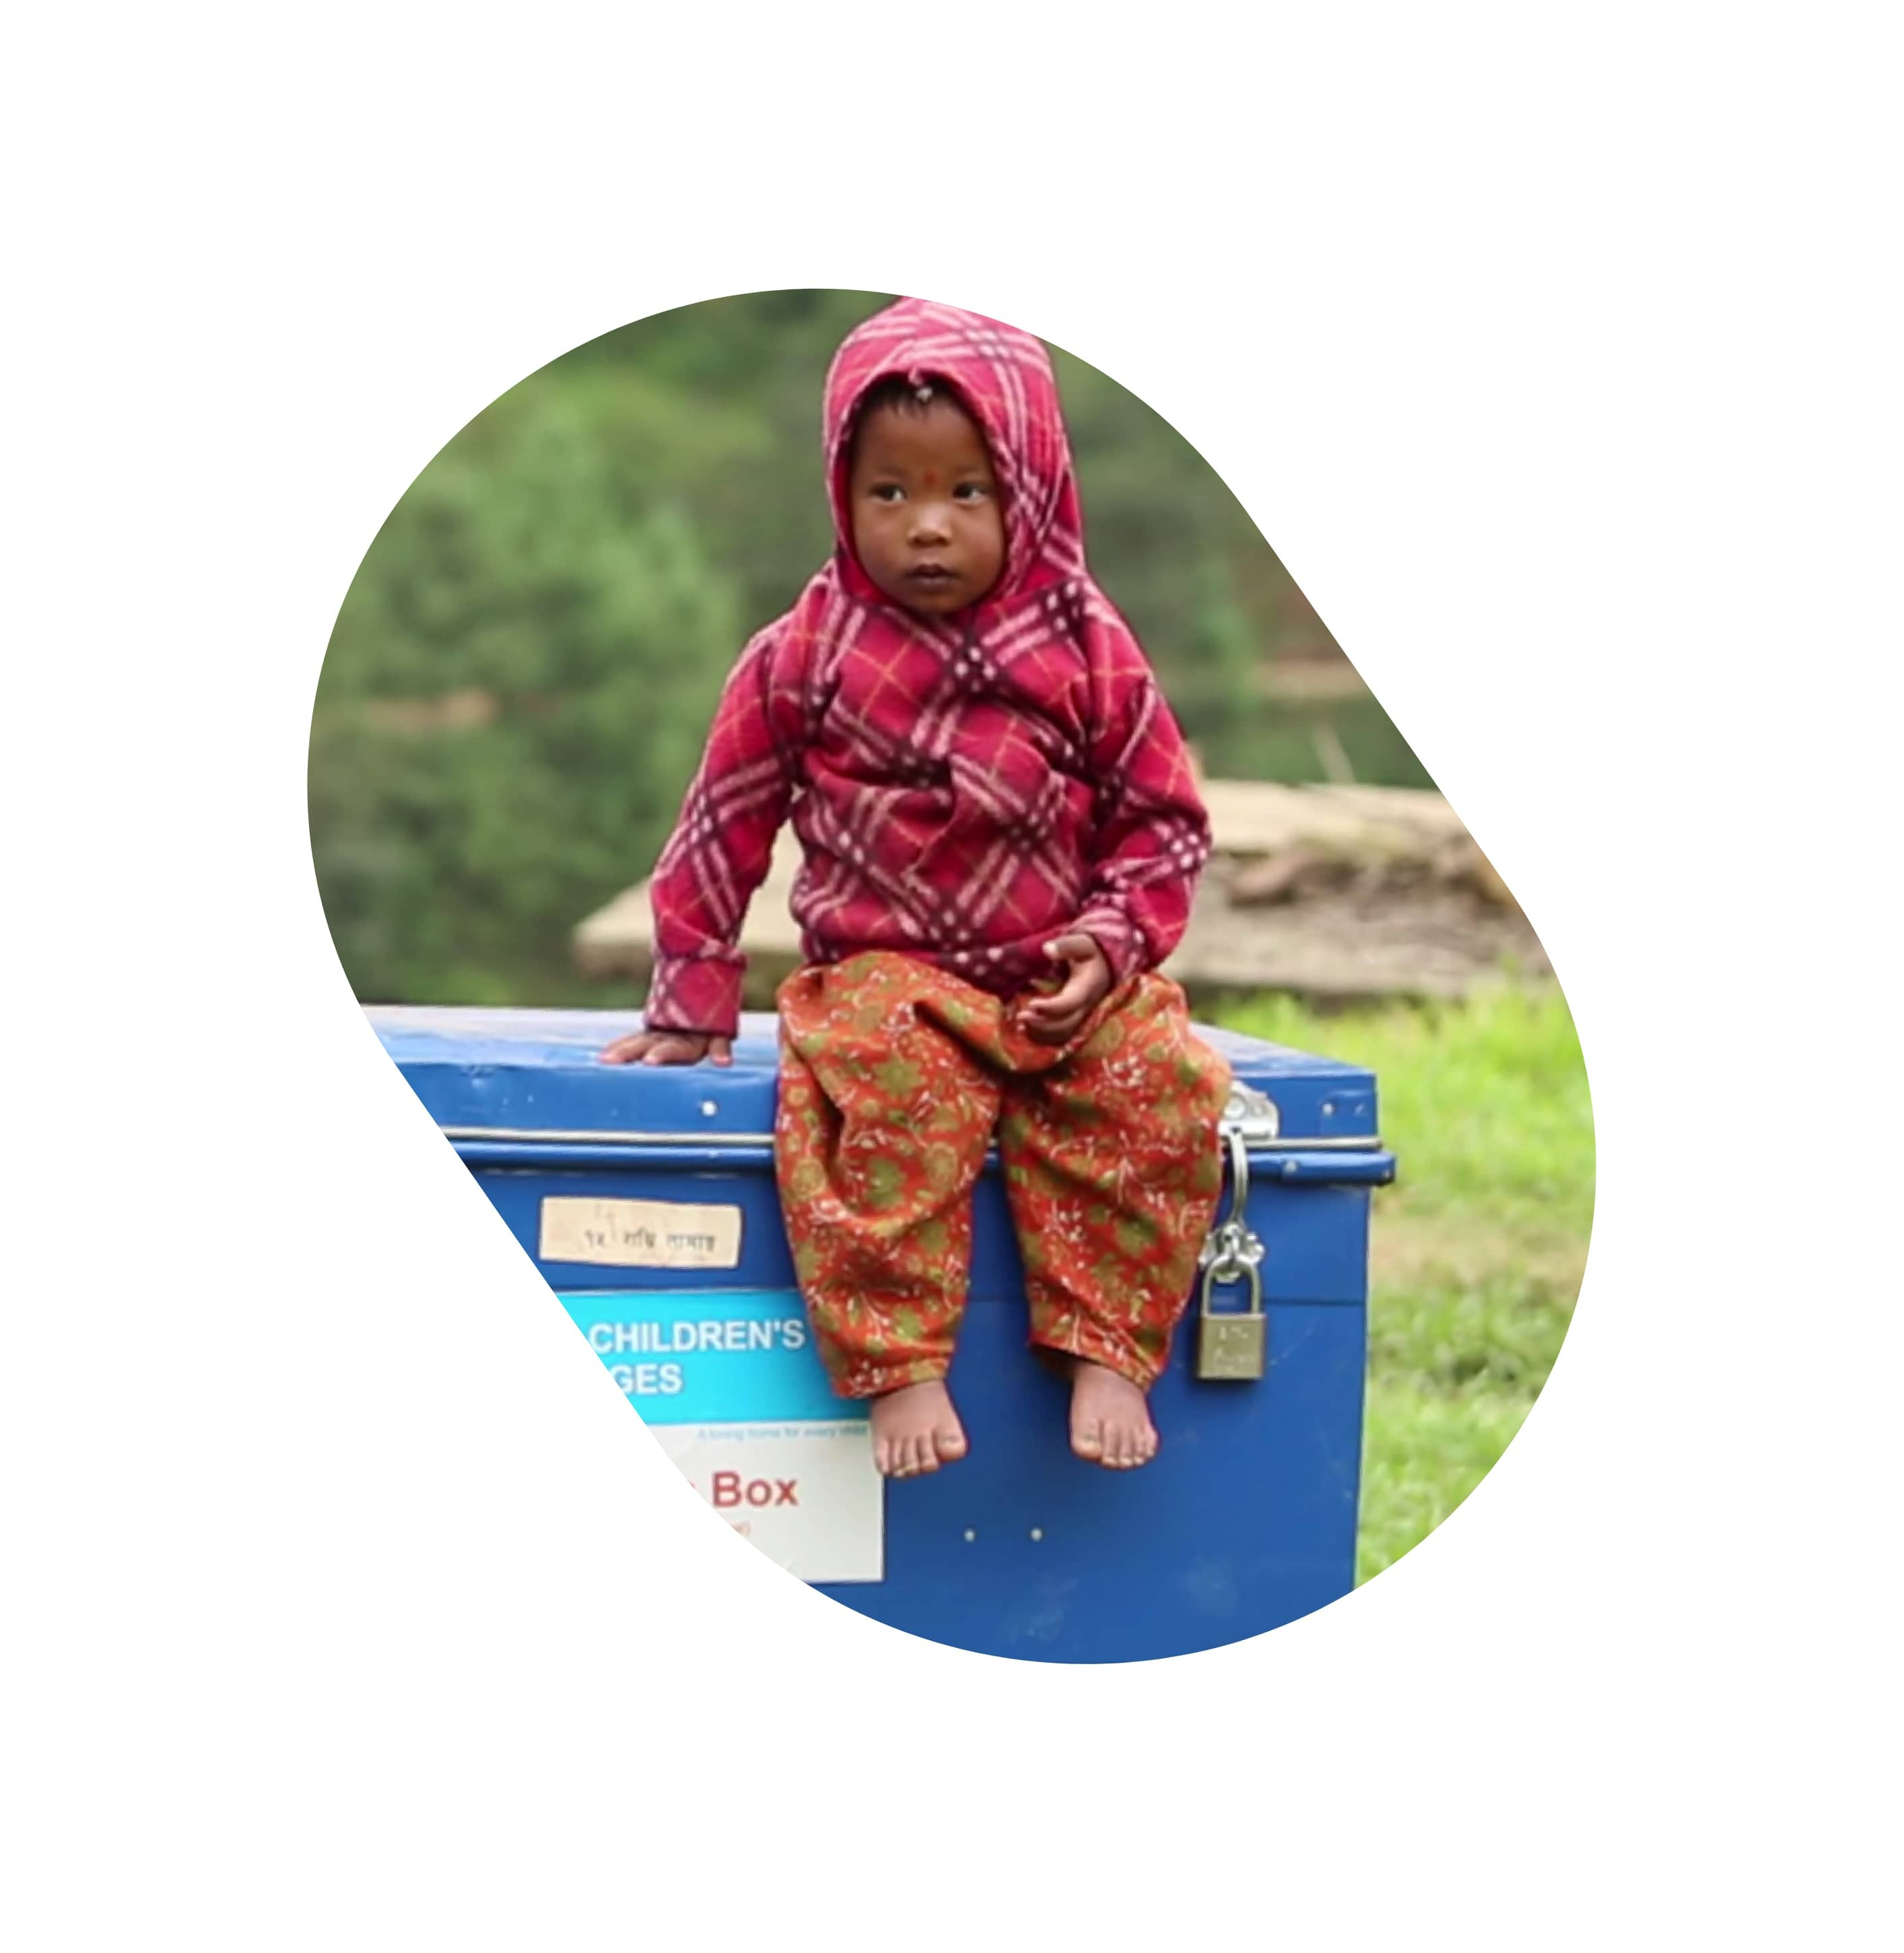 TheValueChain supports SOS Children's Villages